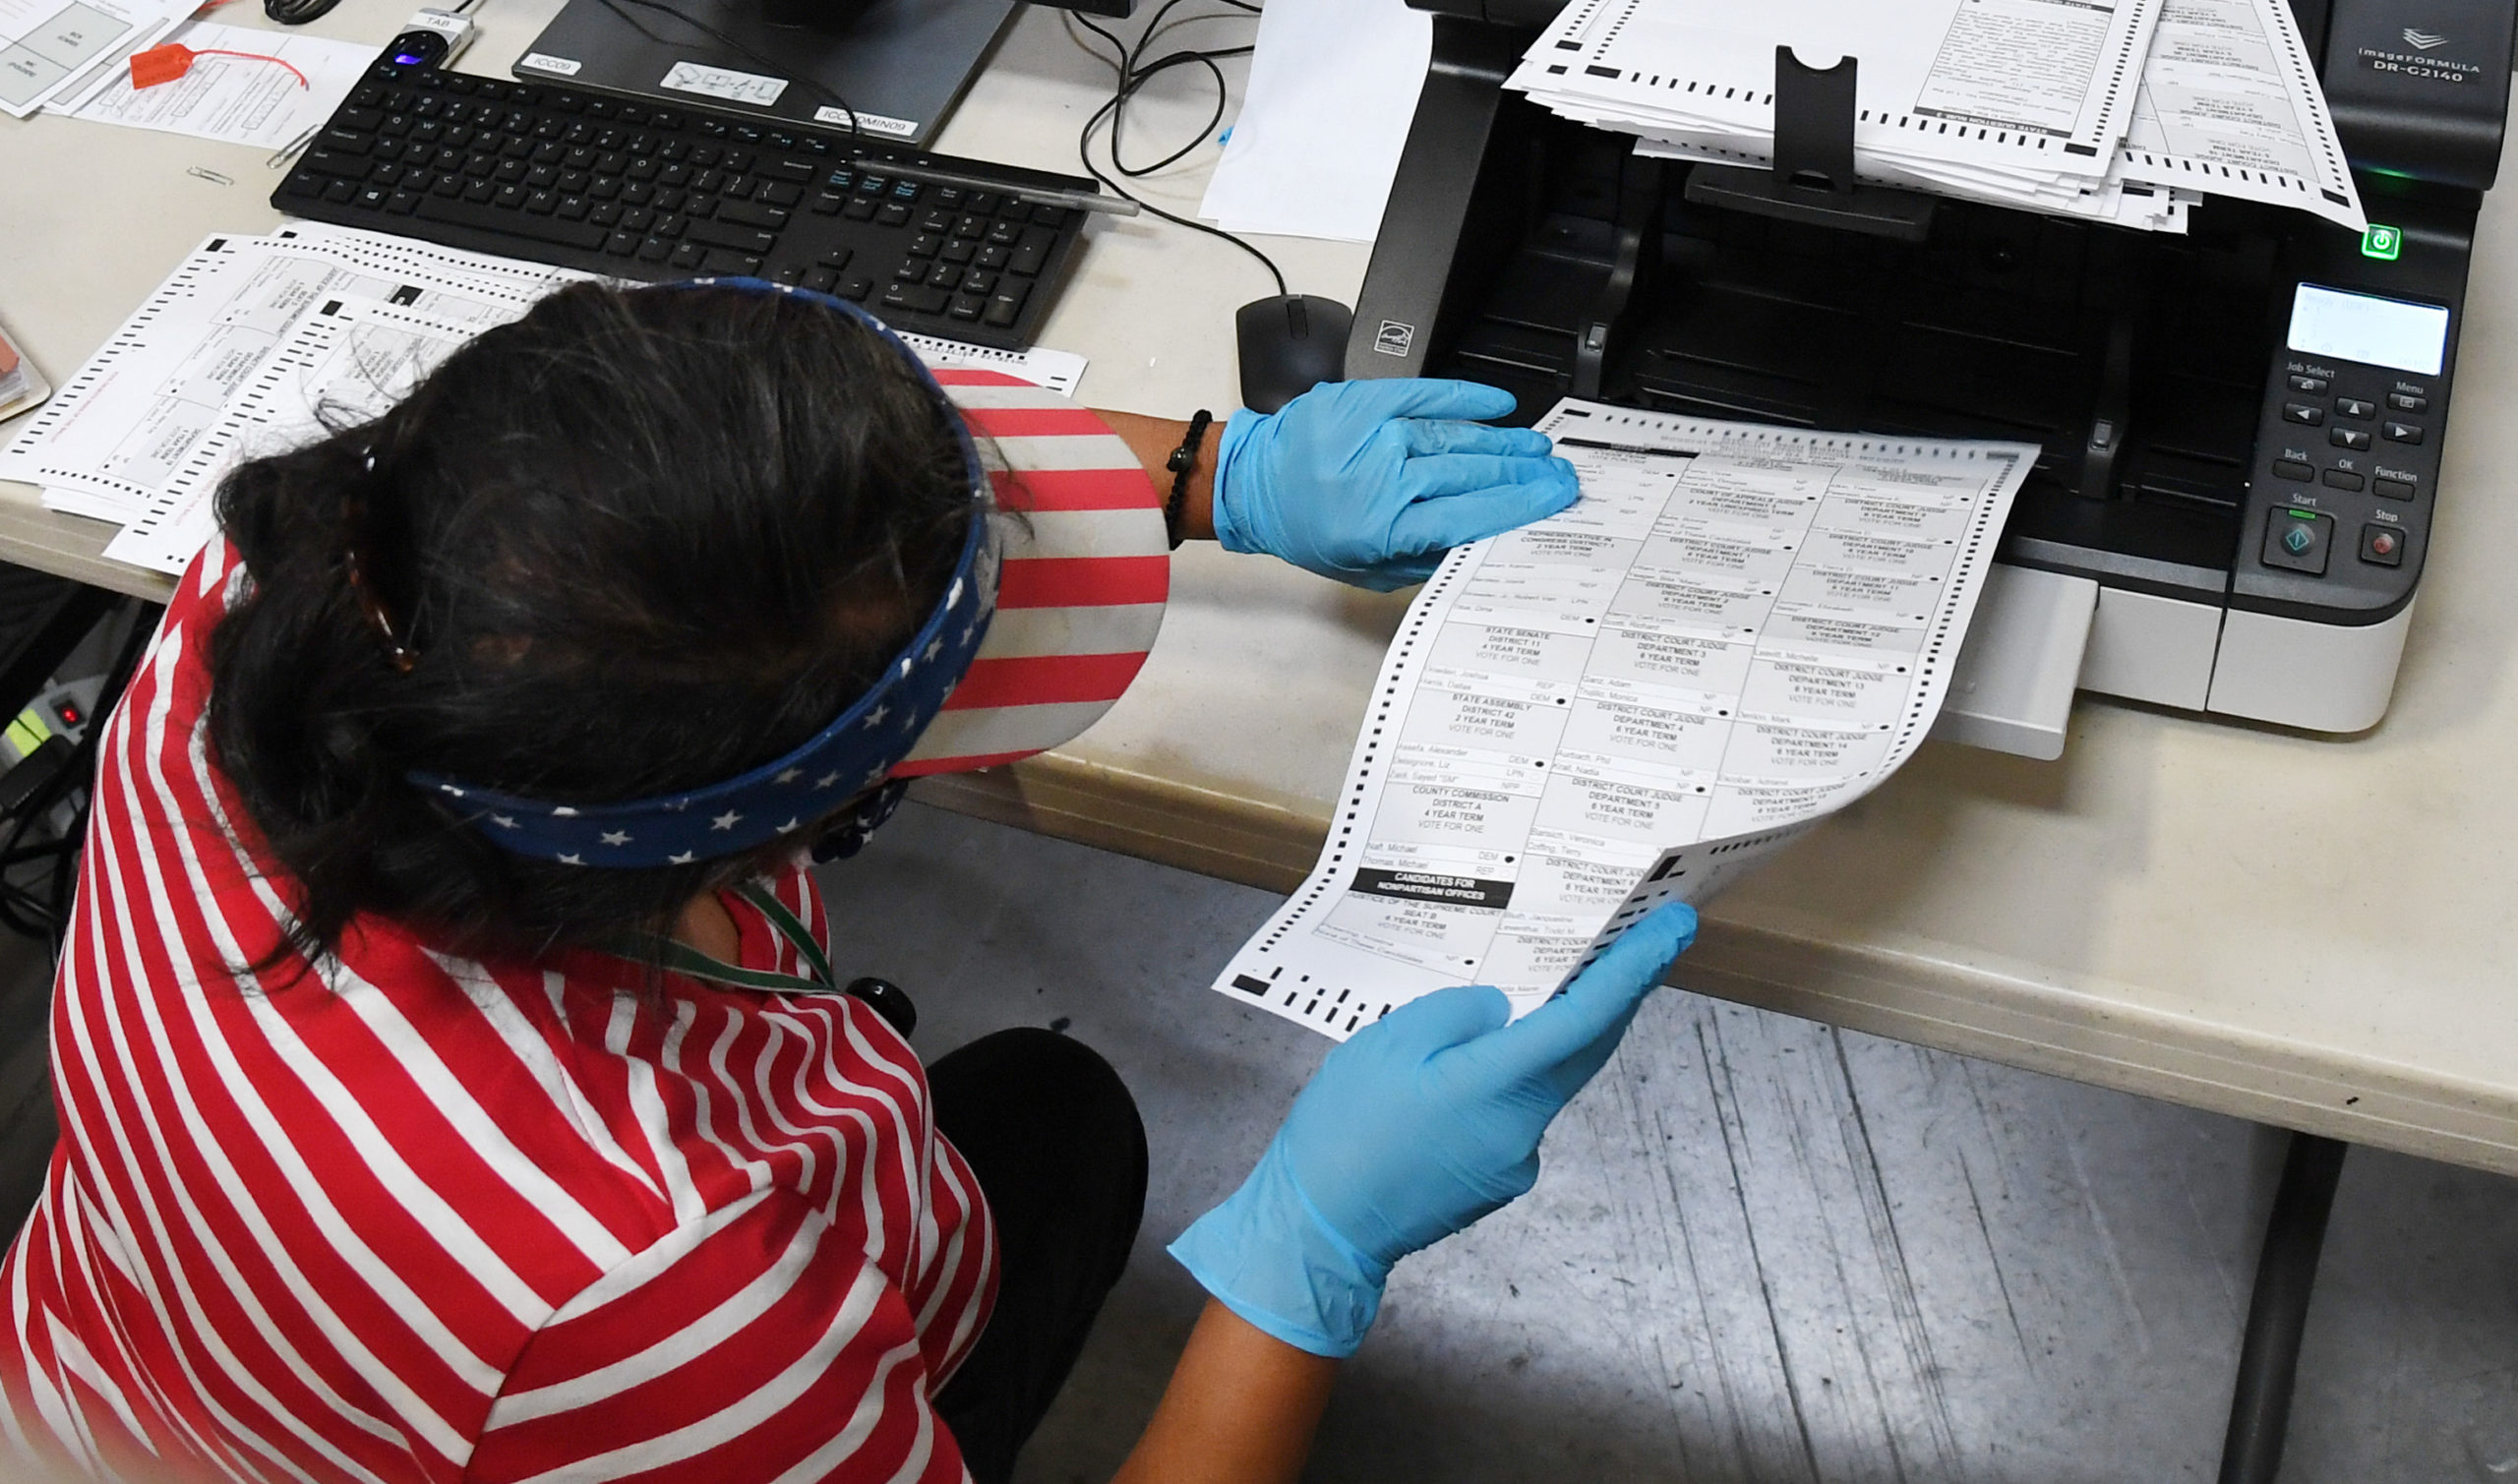 A Clark County election worker scans mail-in ballots at the Clark County Election Department on Oct. 20 in Las Vegas, Nevada. (Ethan Miller/Getty Images)